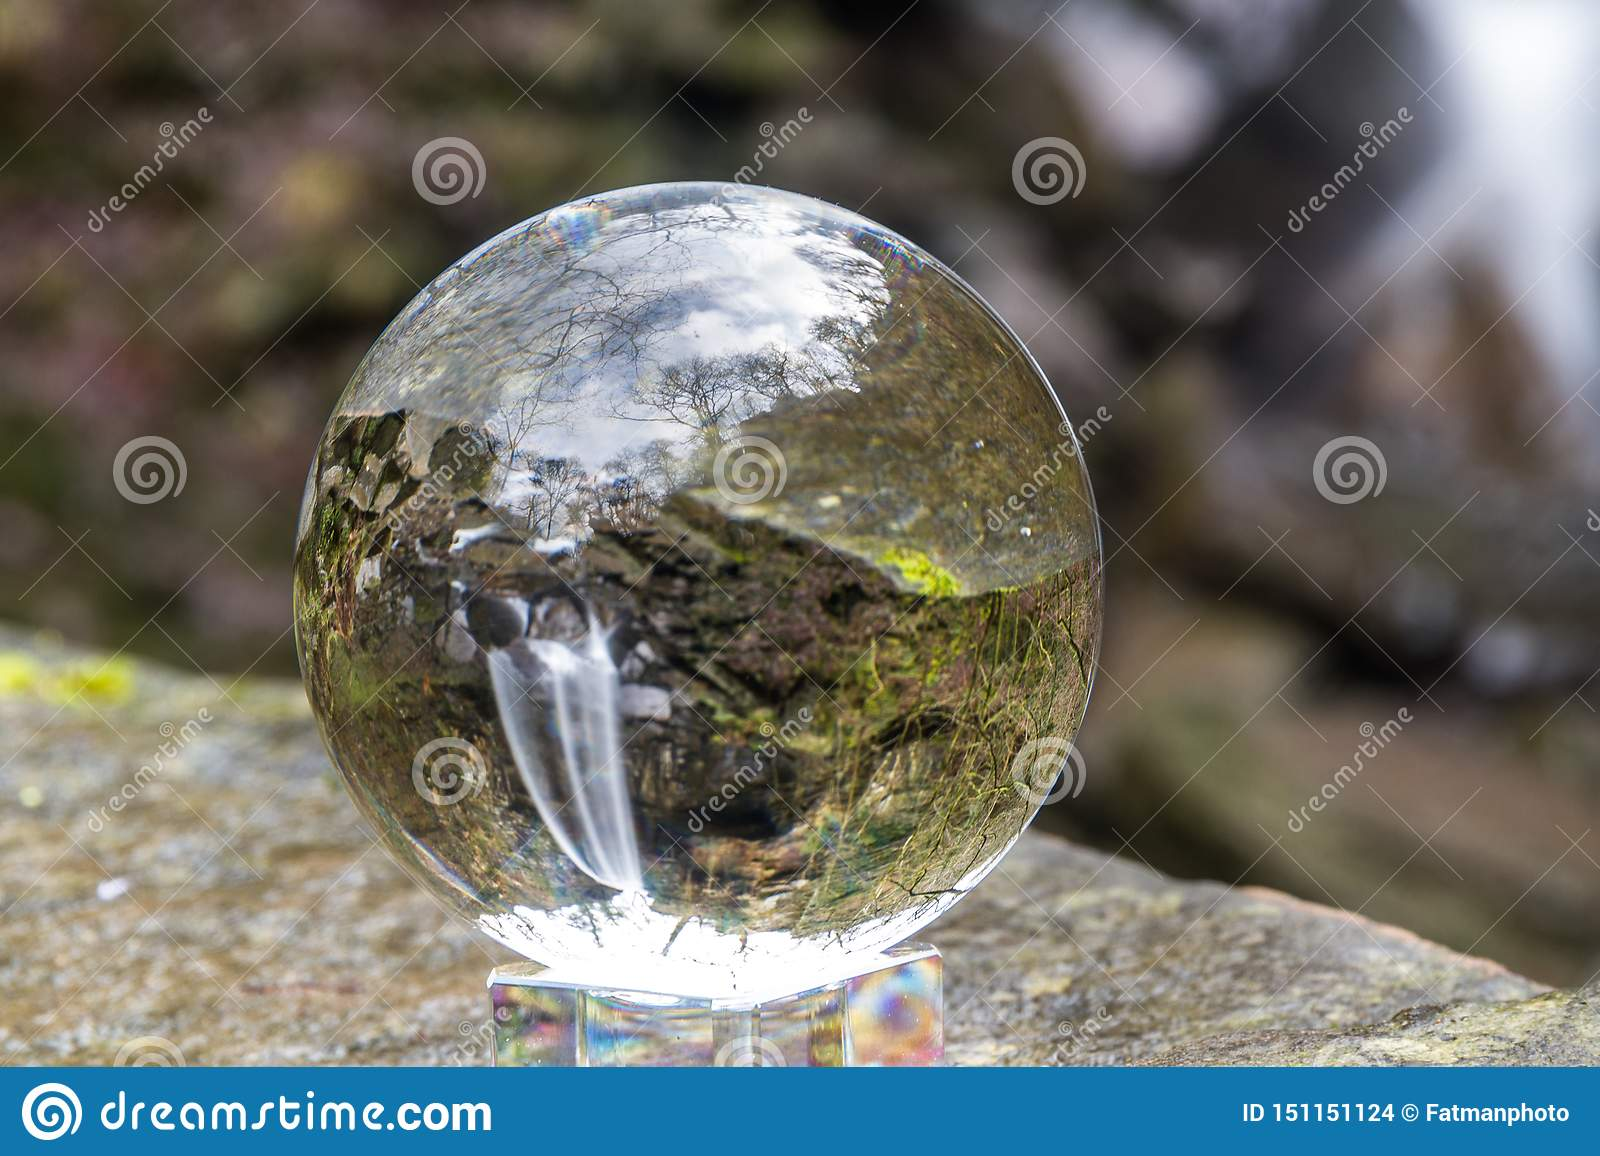 Water cascading down beautiful waterfall, Melincourt, through crystal ball, landscape